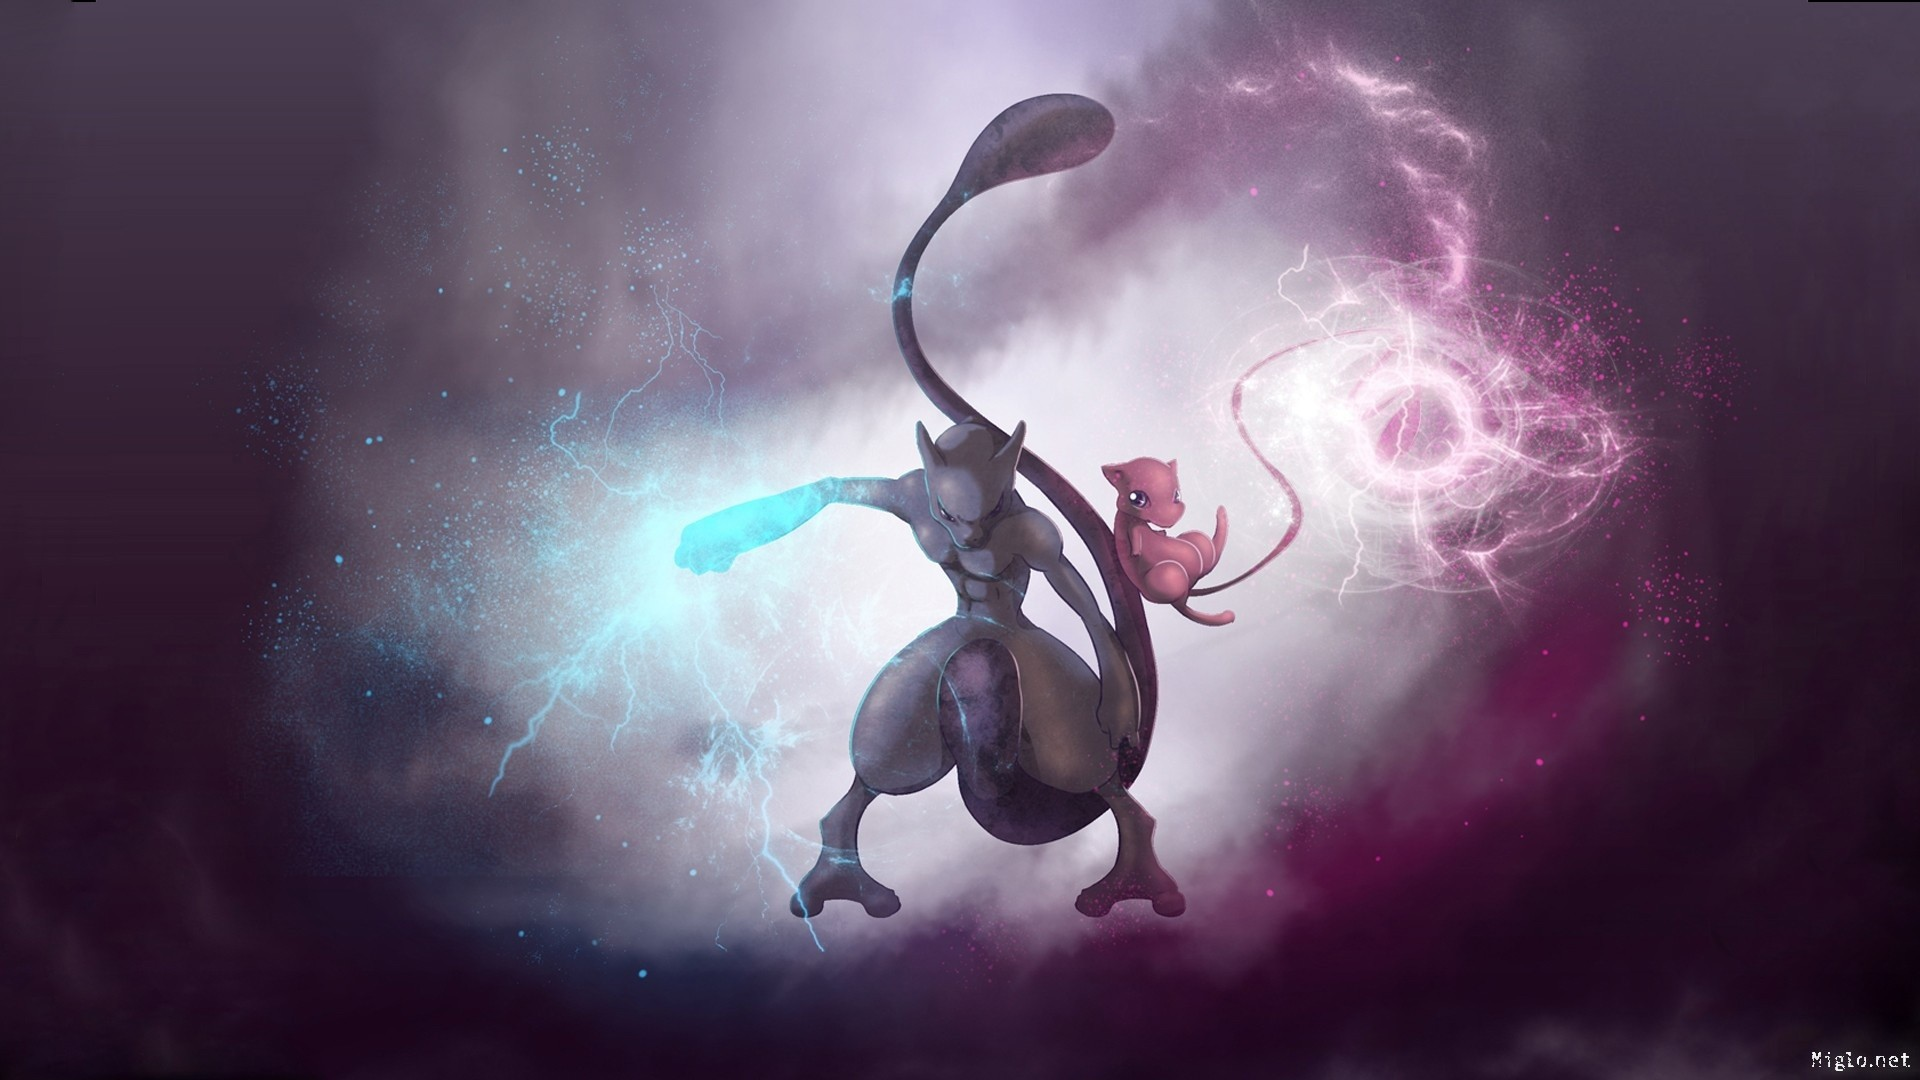 3804721-anime-mewtwo-wallpapers-high-quality-hd-widescreen-